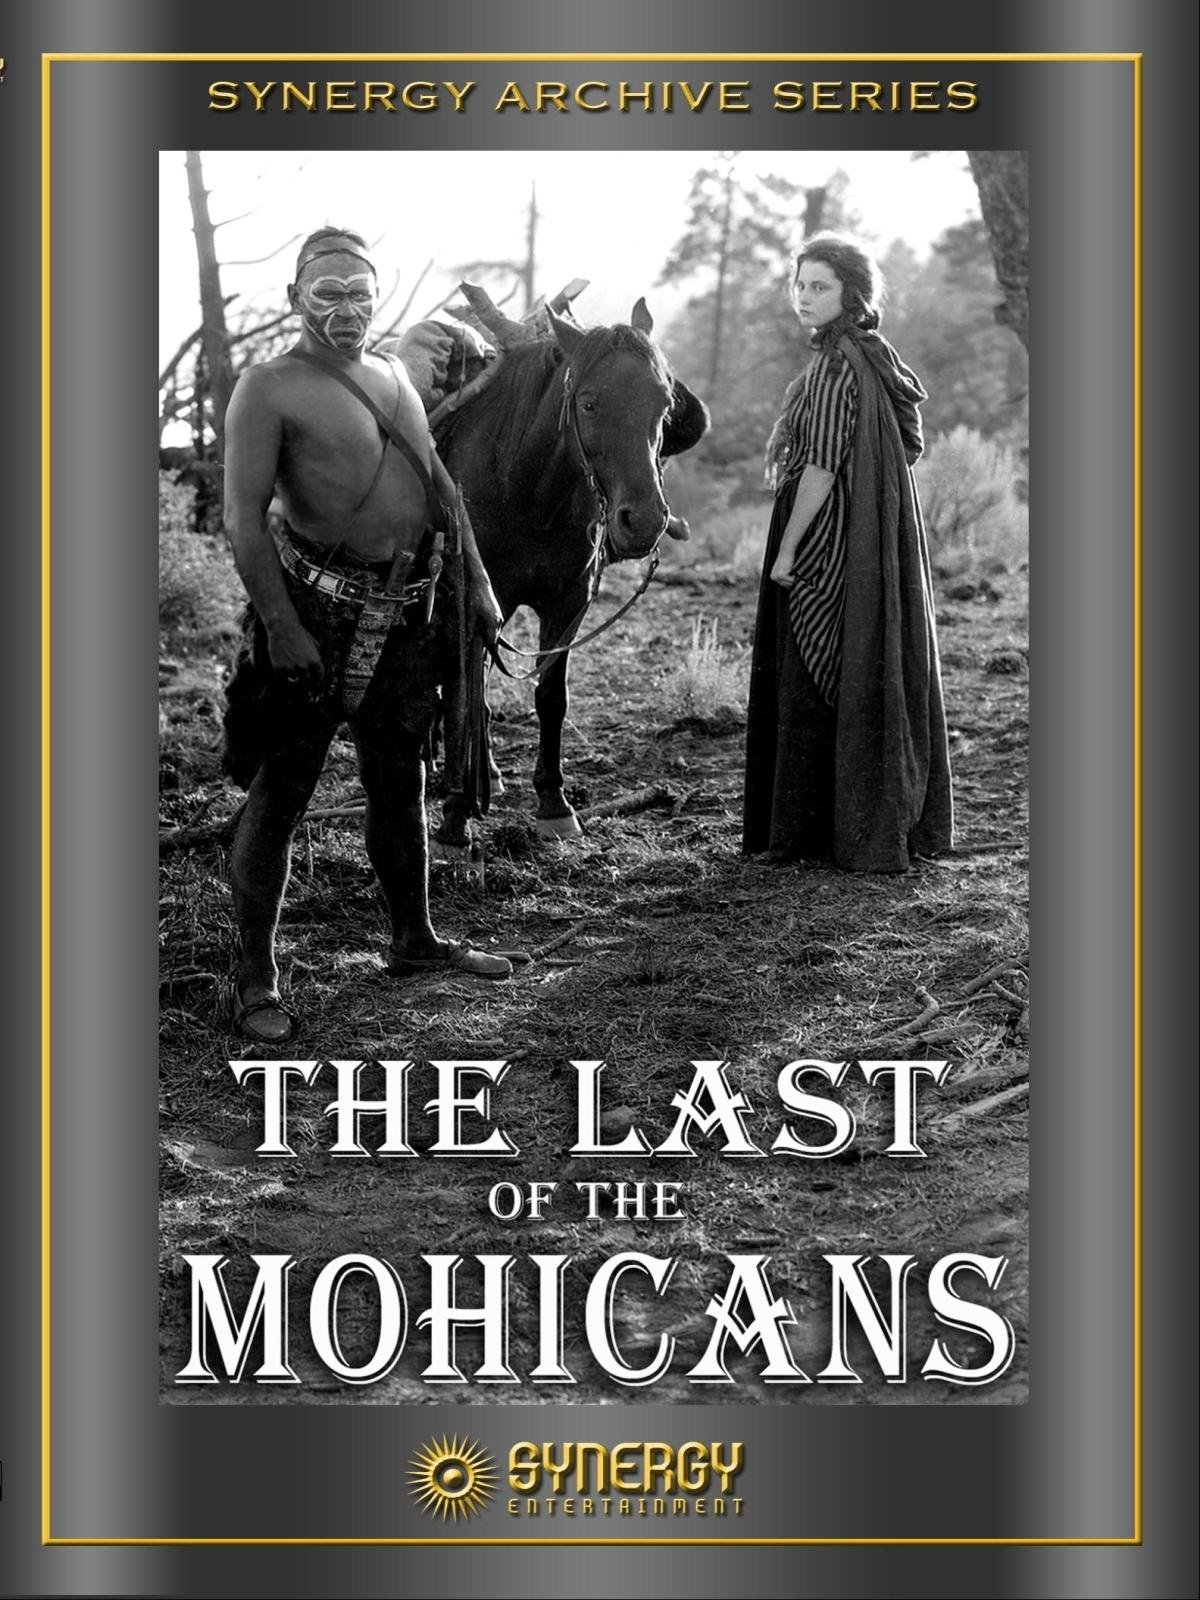 Amazon.com: The Last of the Mohicans (1920 - Silent ...